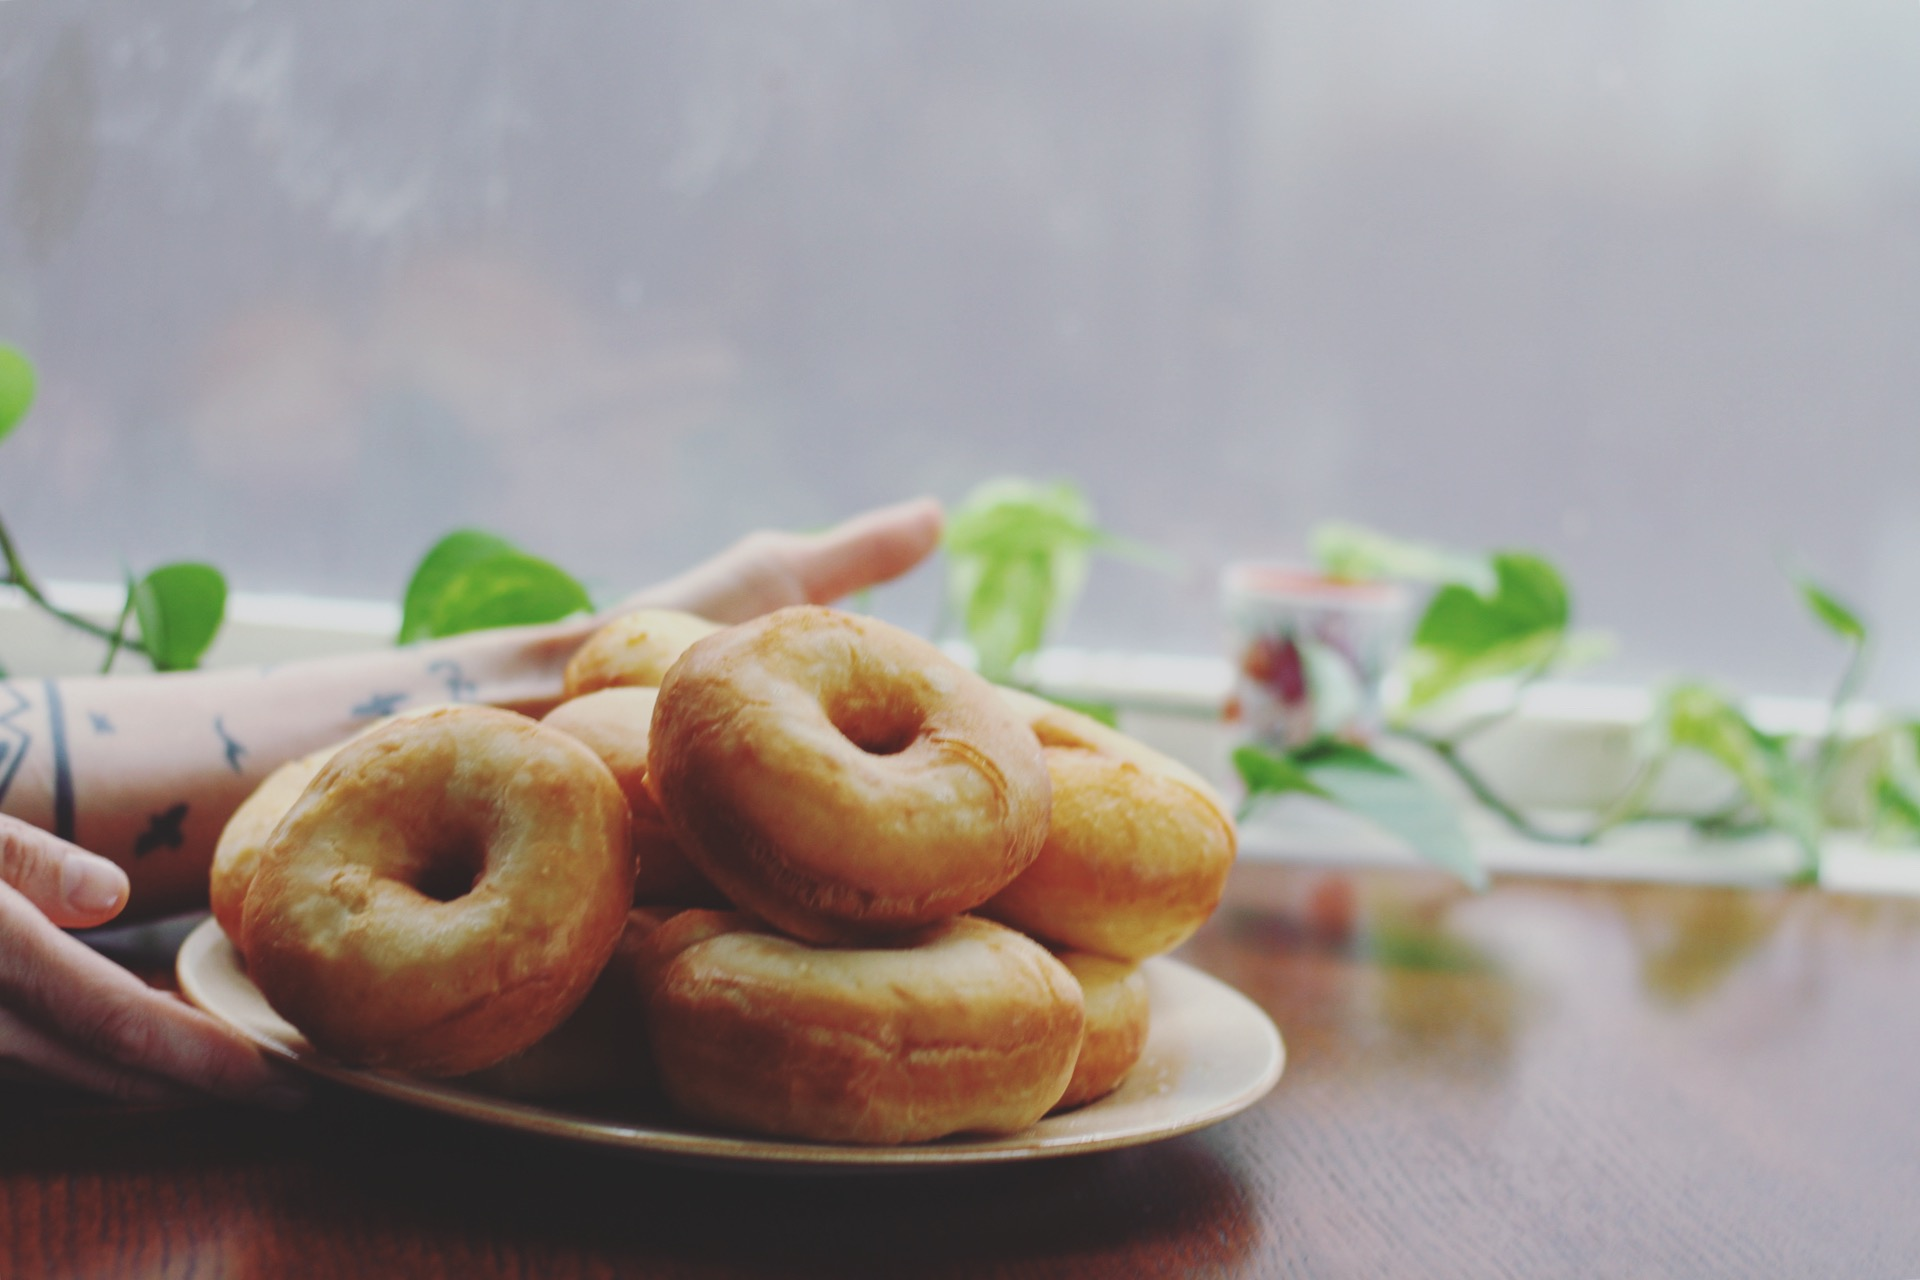 Plate of donuts.jpeg